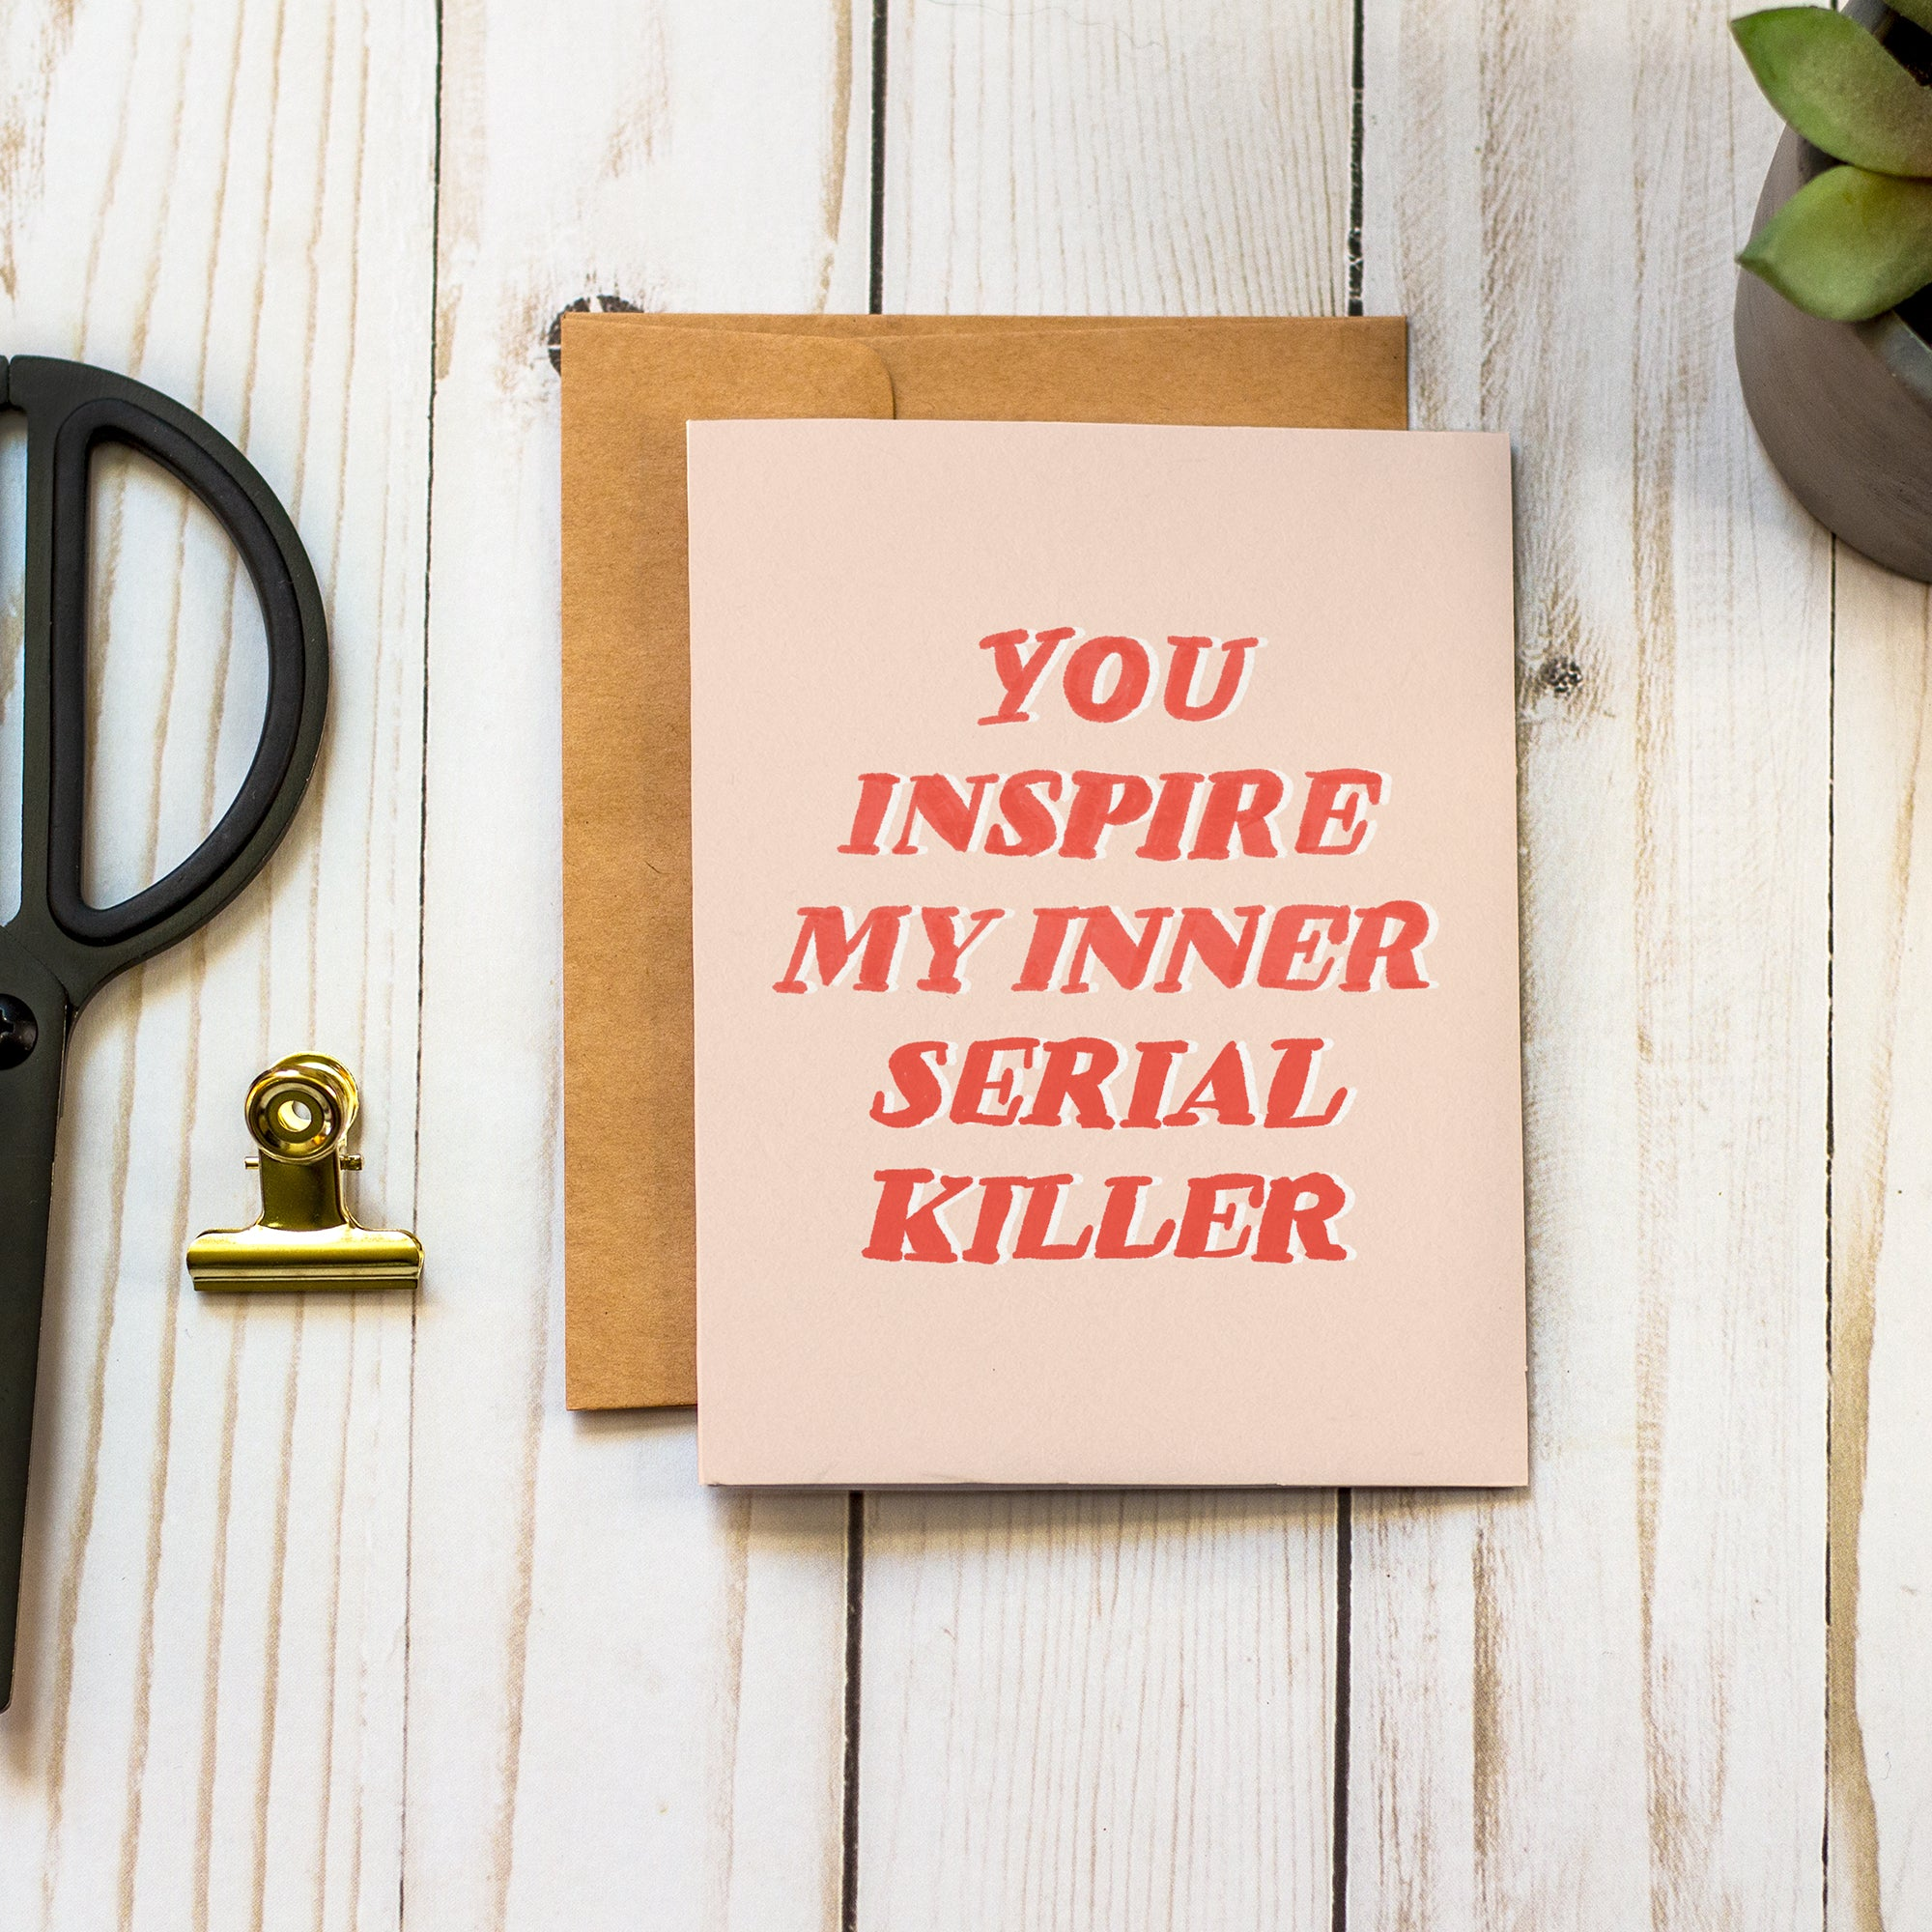 You Inspire My Inner Serial Killer - Divorce Breakup - Blank Inside - Greeting Card